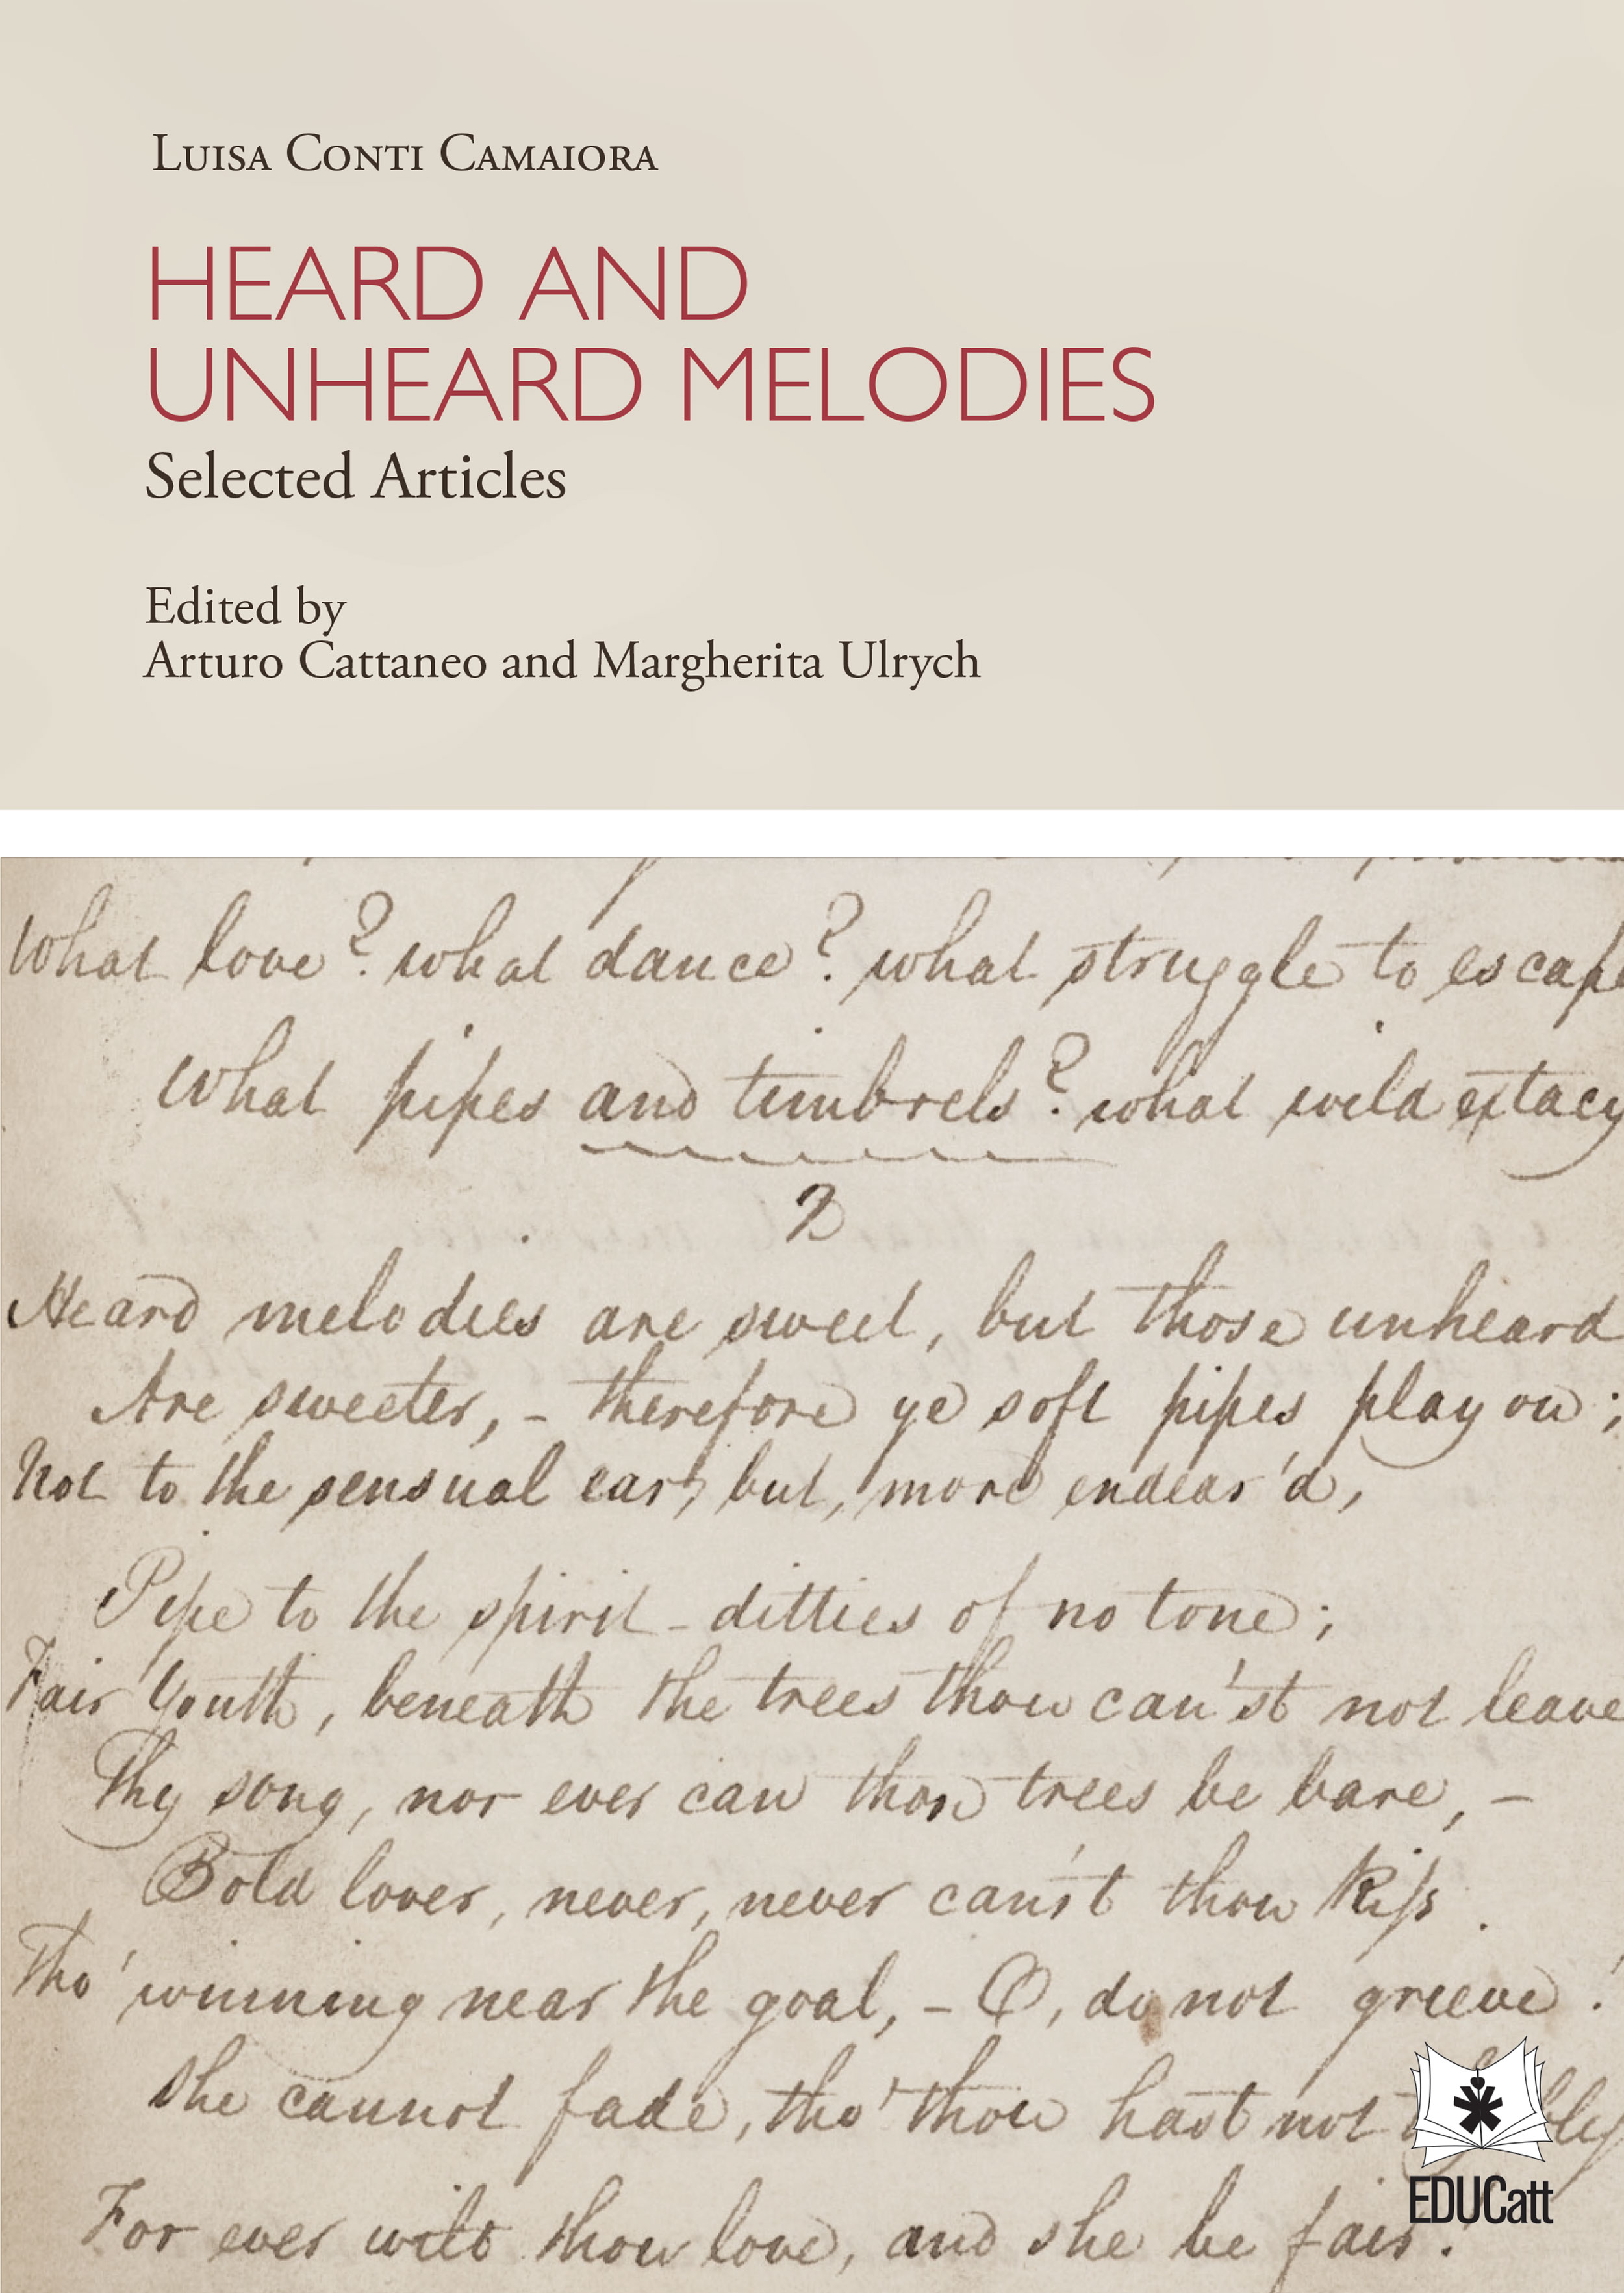 HEARD AND UNHEARD MELODIES. SELECTED ARTICLES